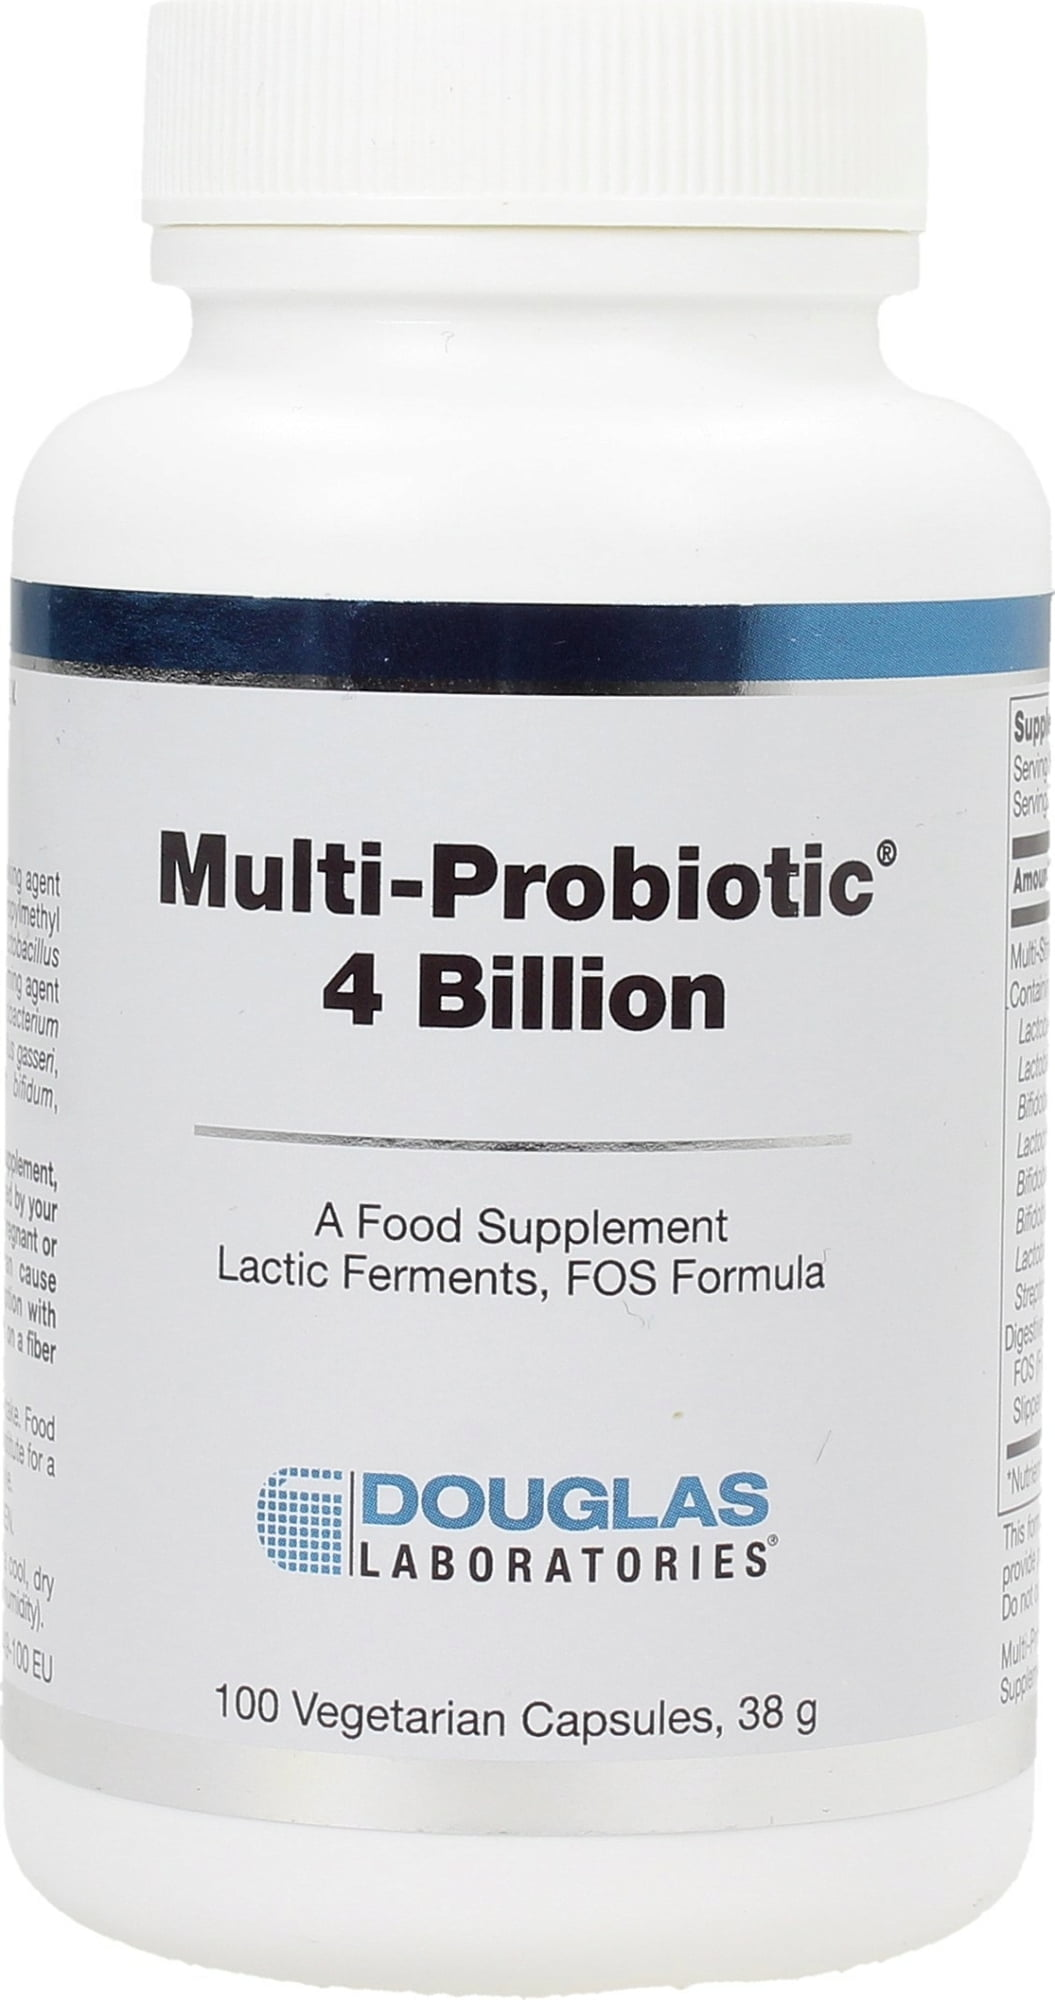 Douglas Laboratories Multi-Probiotic 4000 - 100 Kapseln von Douglas Laboratories